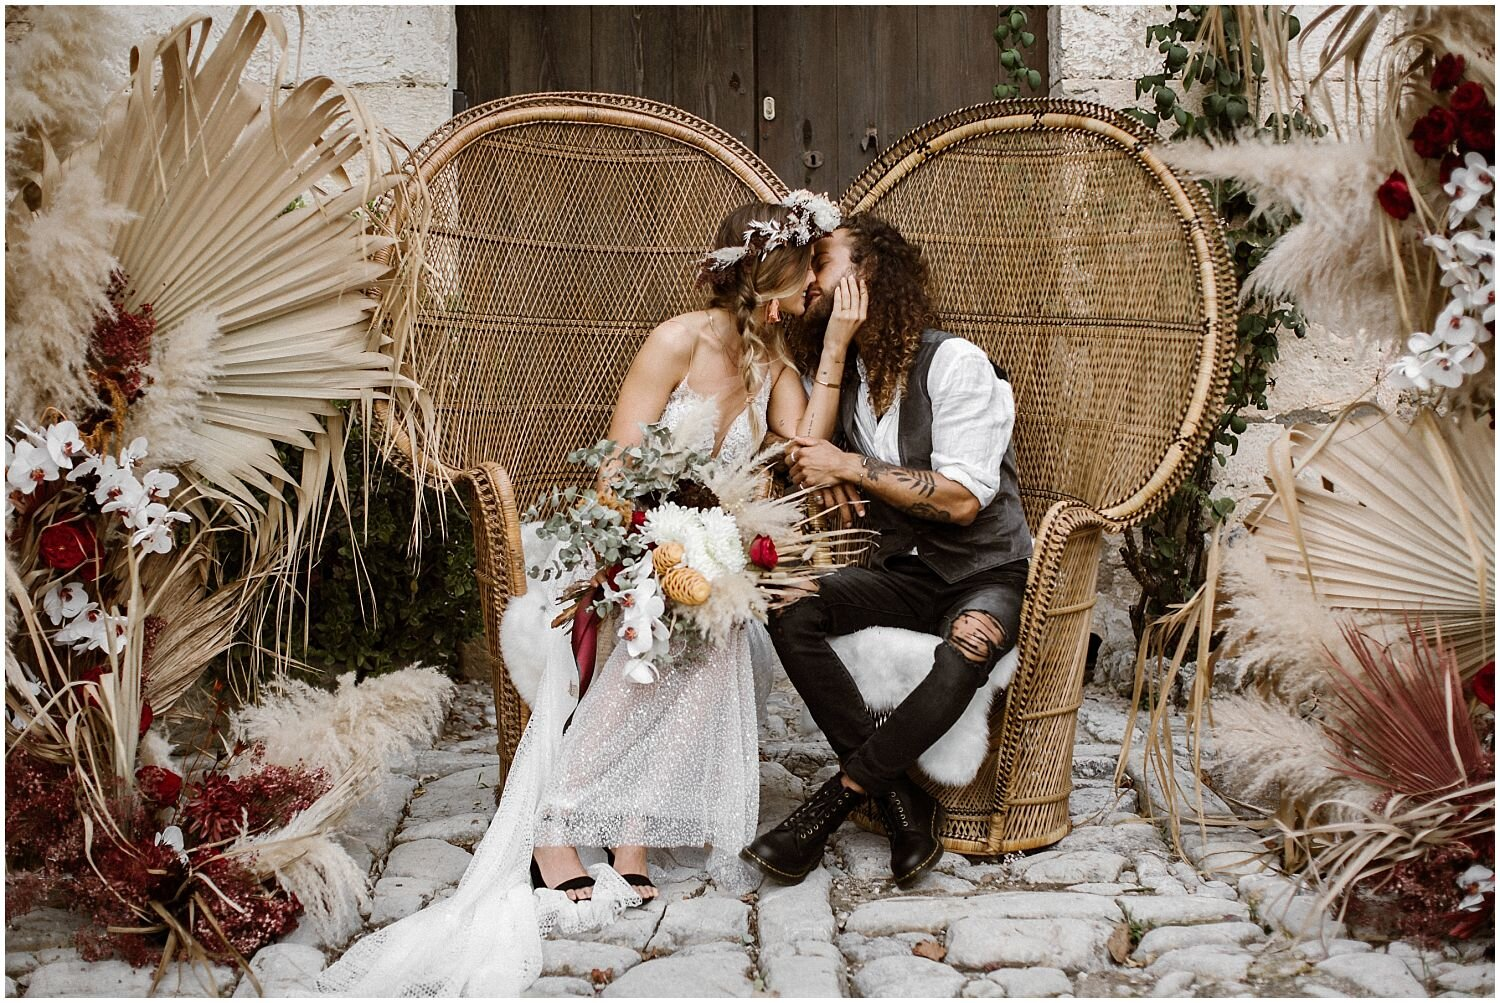 Boho-Wedding-with-Rattan-Chairs